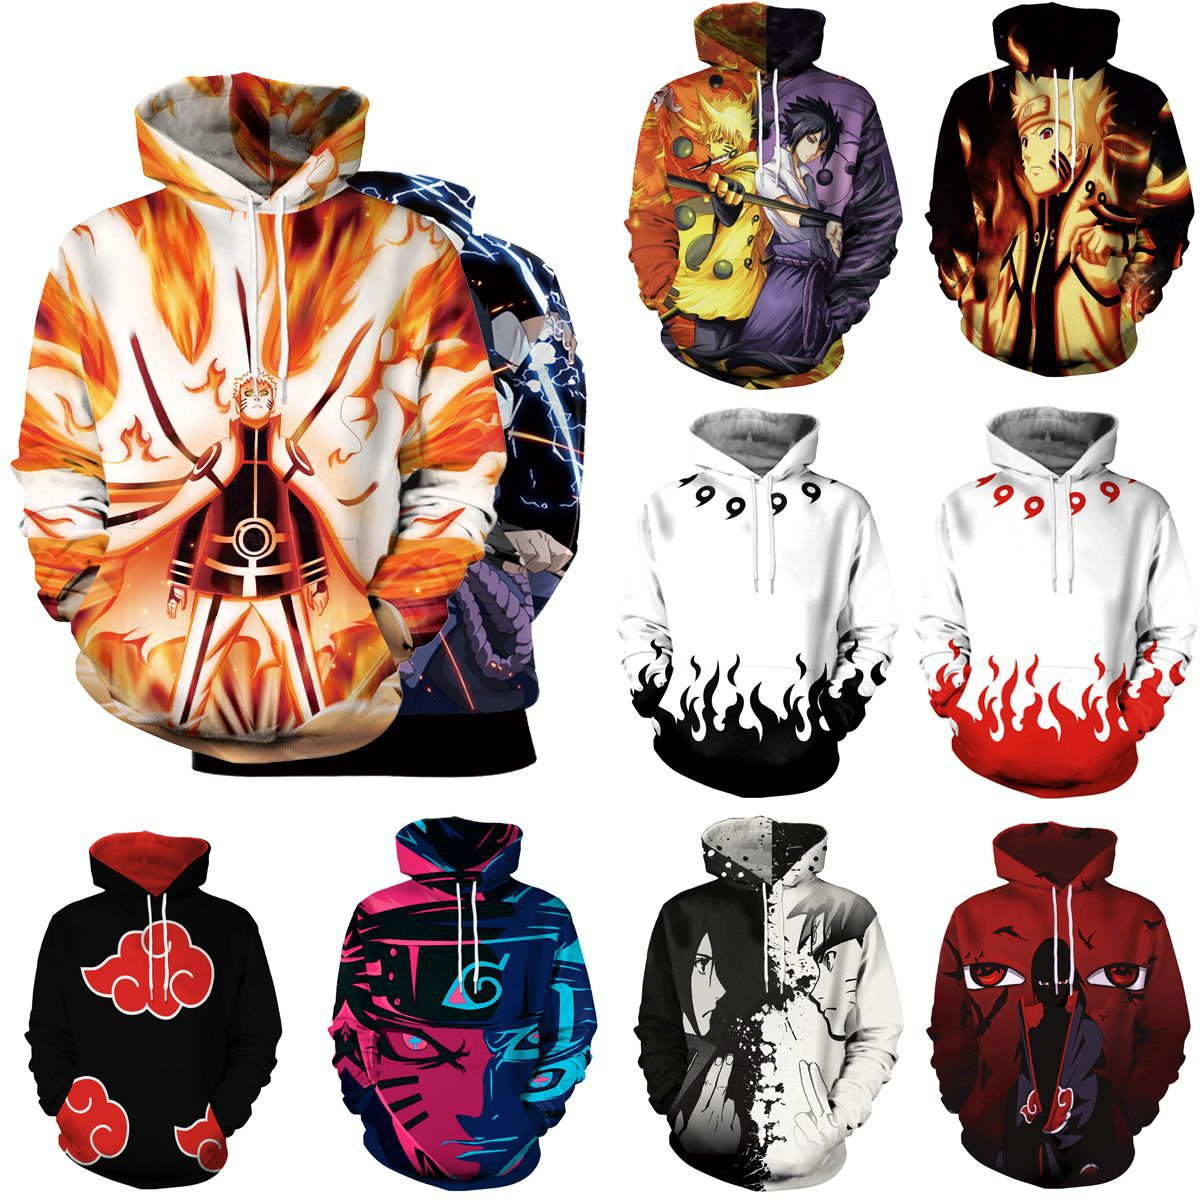 Kids Anime Naruto Pocket Hooded Sweatshirts Sasuke 3D Hoodies Hot Animation Pullovers Tracksuits Men/Women Long Sleeve Outerwear